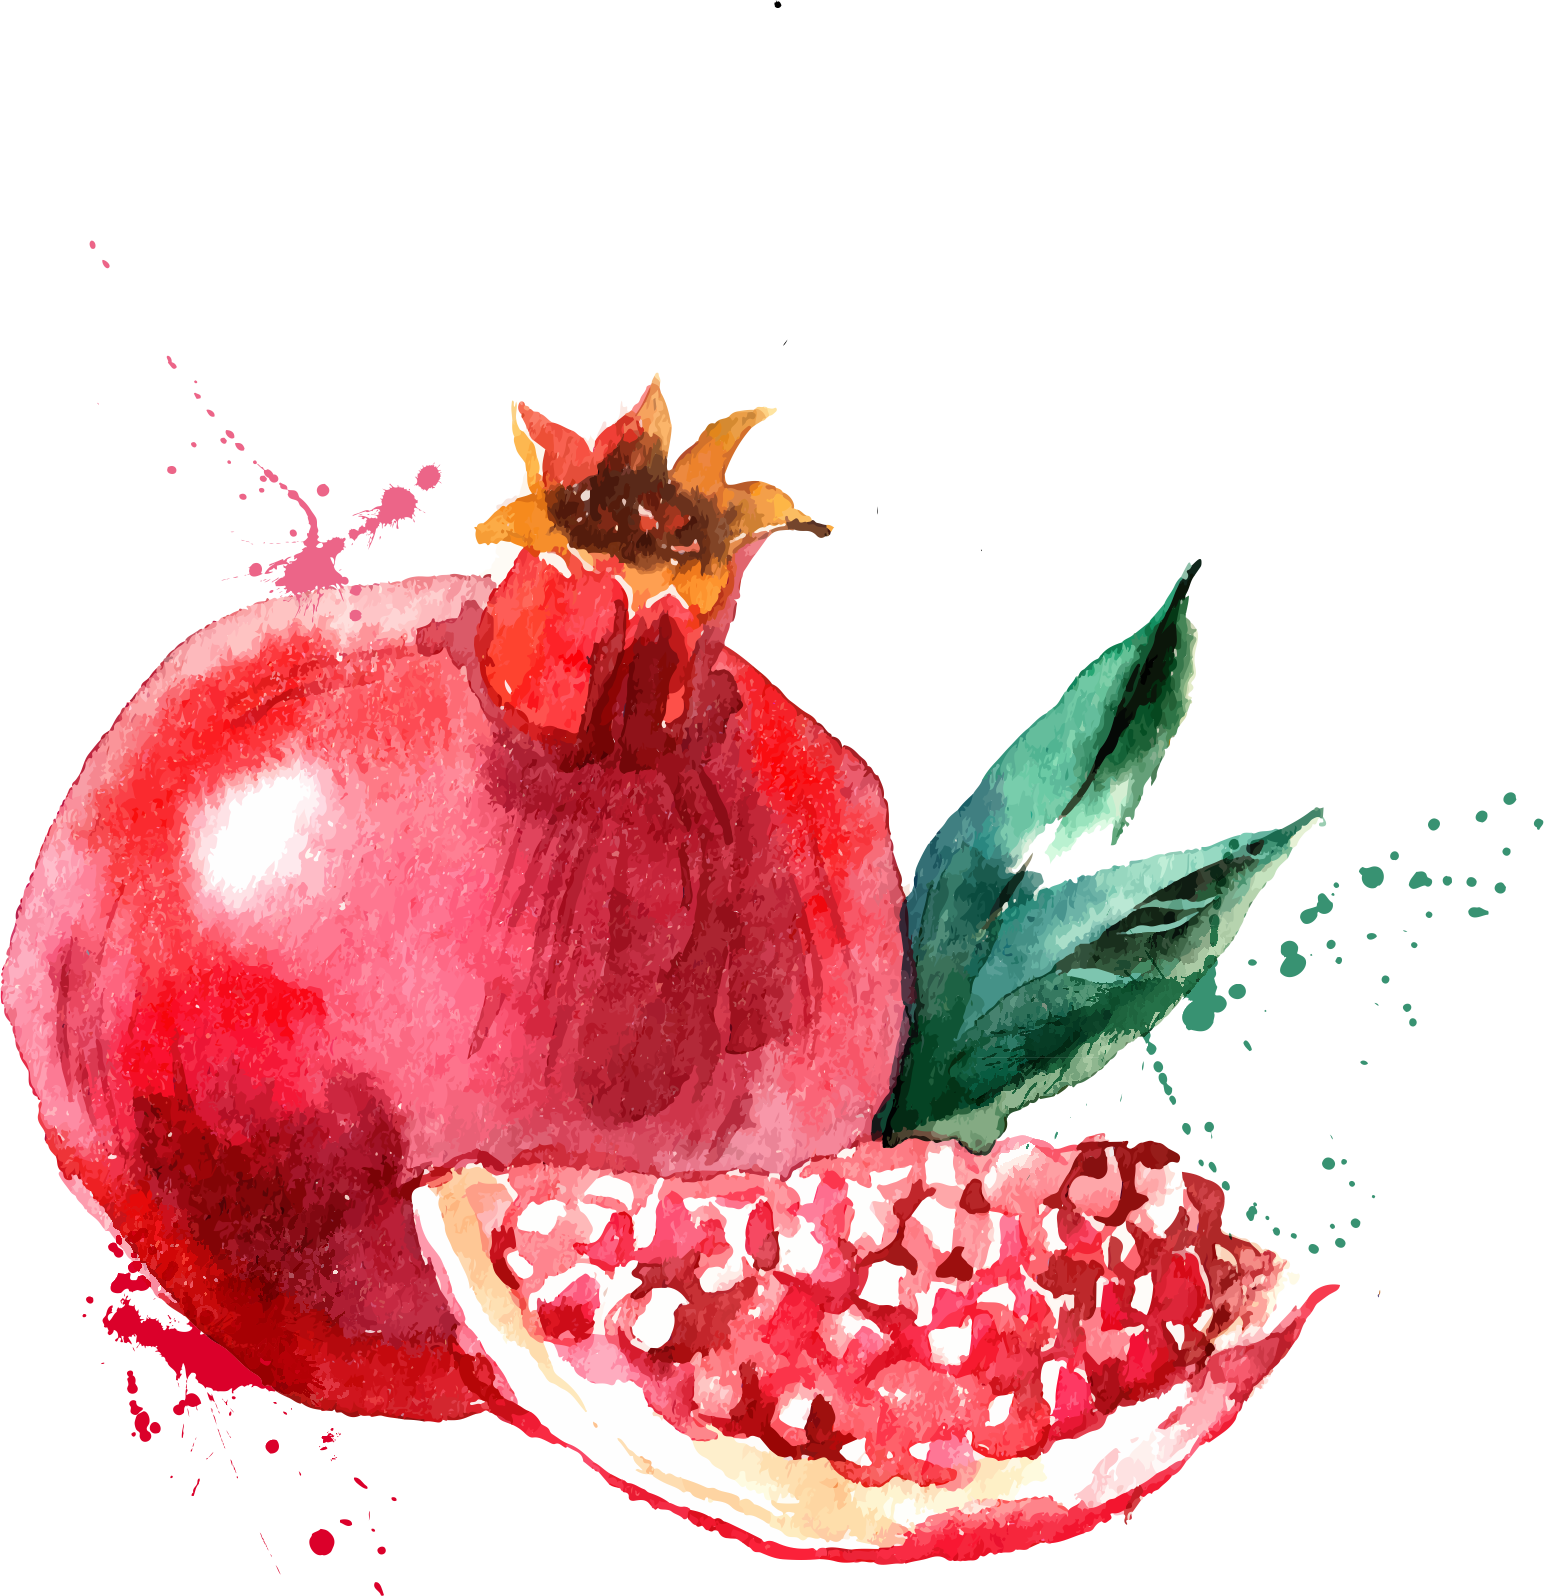 clipart free  pomegranate png for. Drawing strawberries watercolor